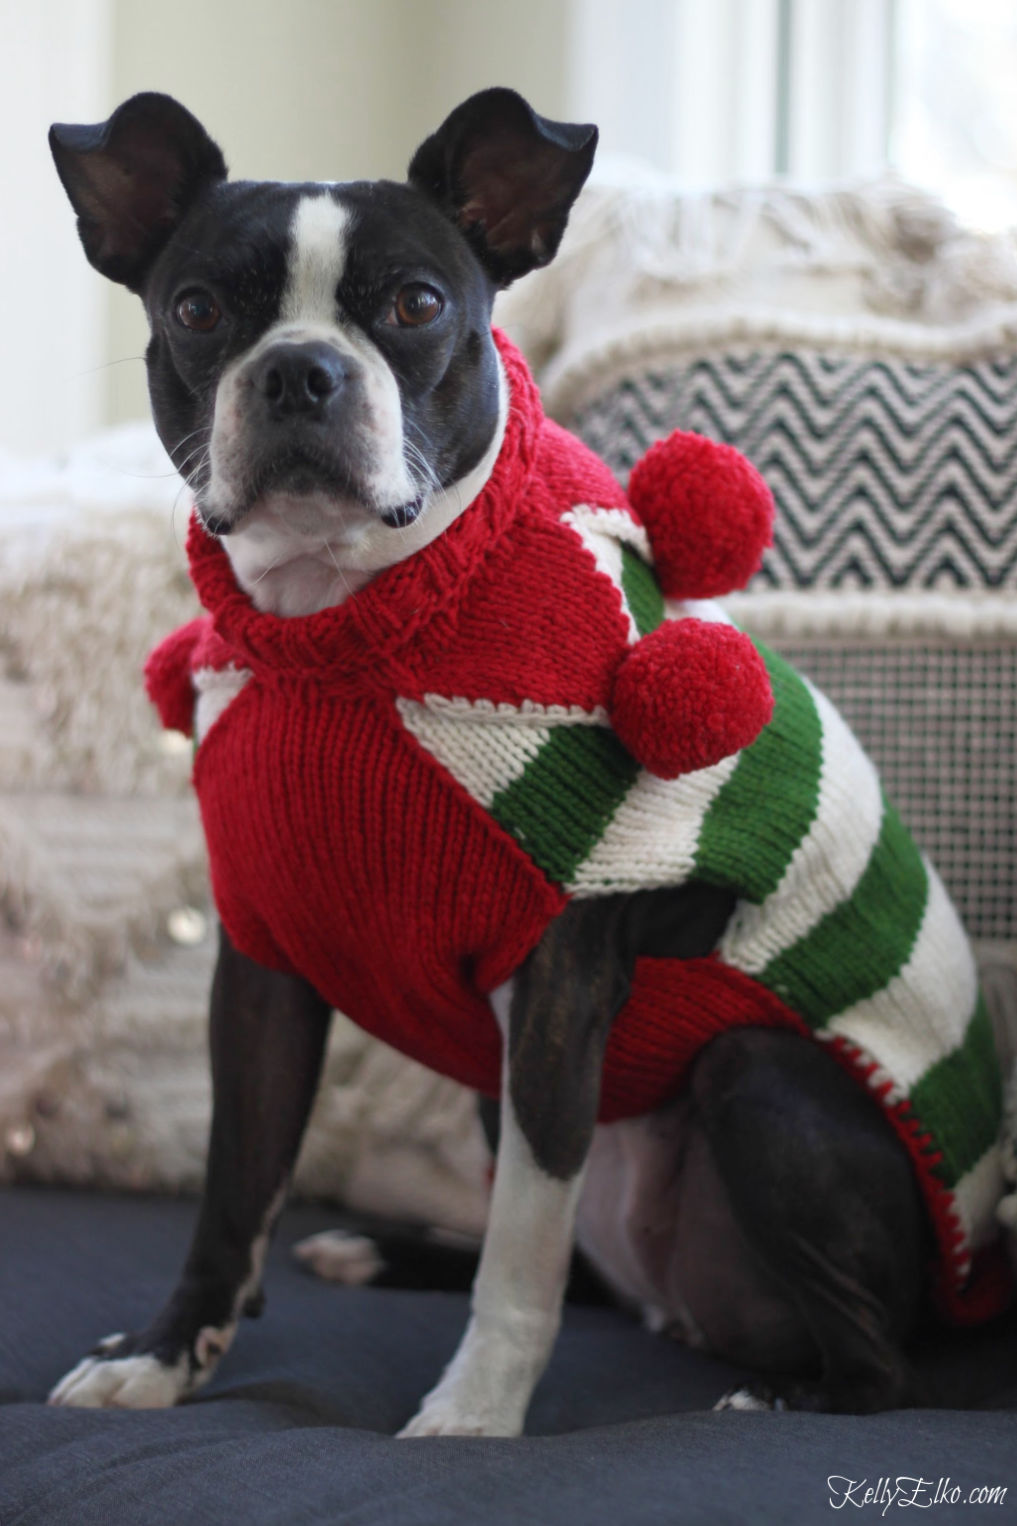 Cute Boston Terrier in her Christmas elf sweater kellyelko.com #christmasdog #dogclothes #bostonterrier #kellyelko